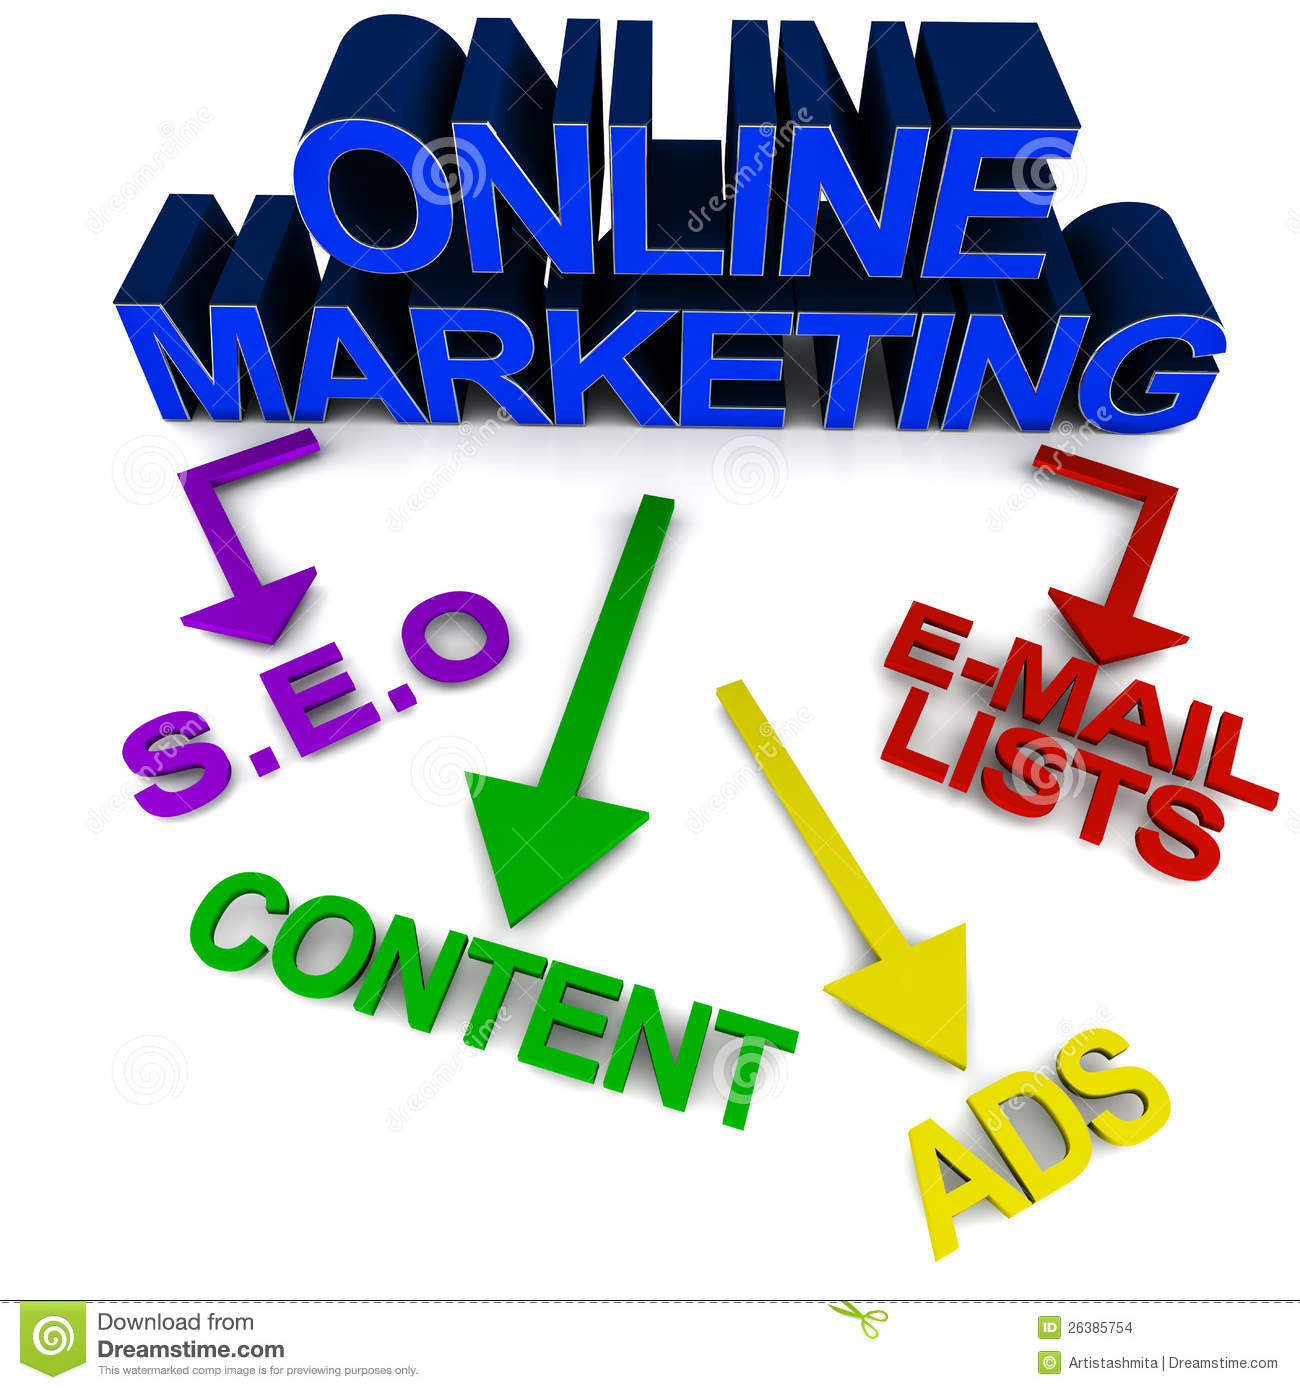 Online marketing hulpmiddelen